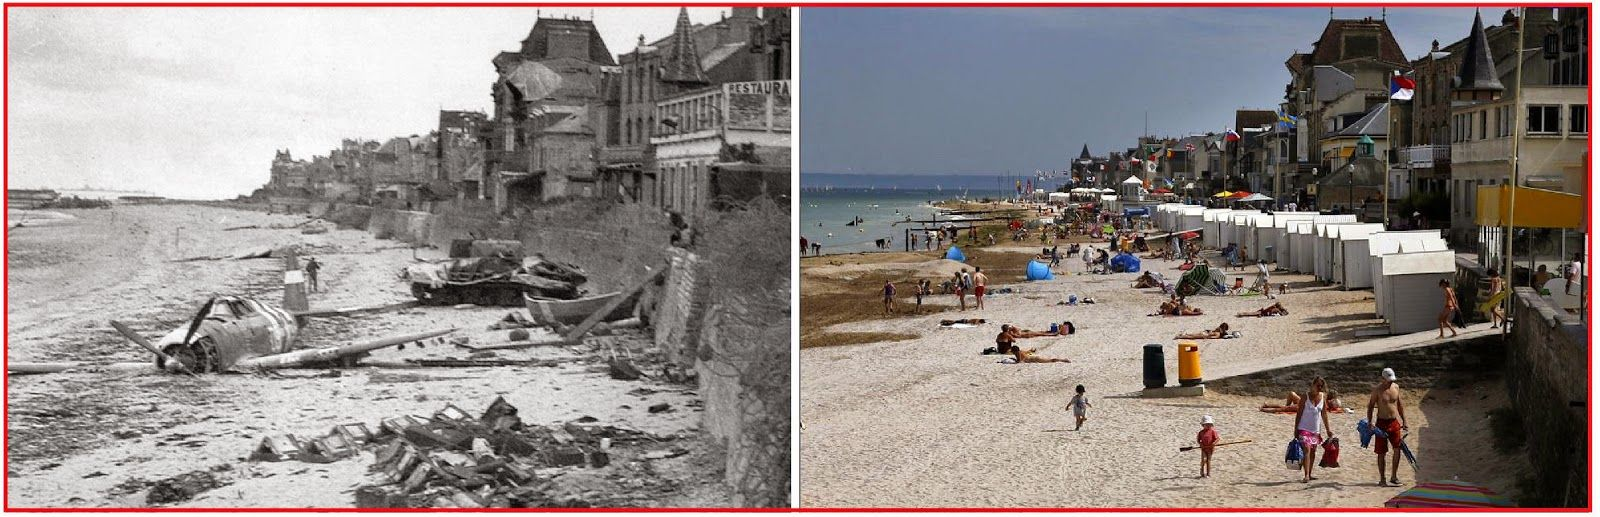 Incredible contrasts shown here as well - A crashed US fighter plane on the waterfront sometime after Canadian Forces came ashore at Juno Beach on D-Day - The old and new photos were taken at Saint-Aubin-Sur-Mer, France in June of 1944 and August of 2013.